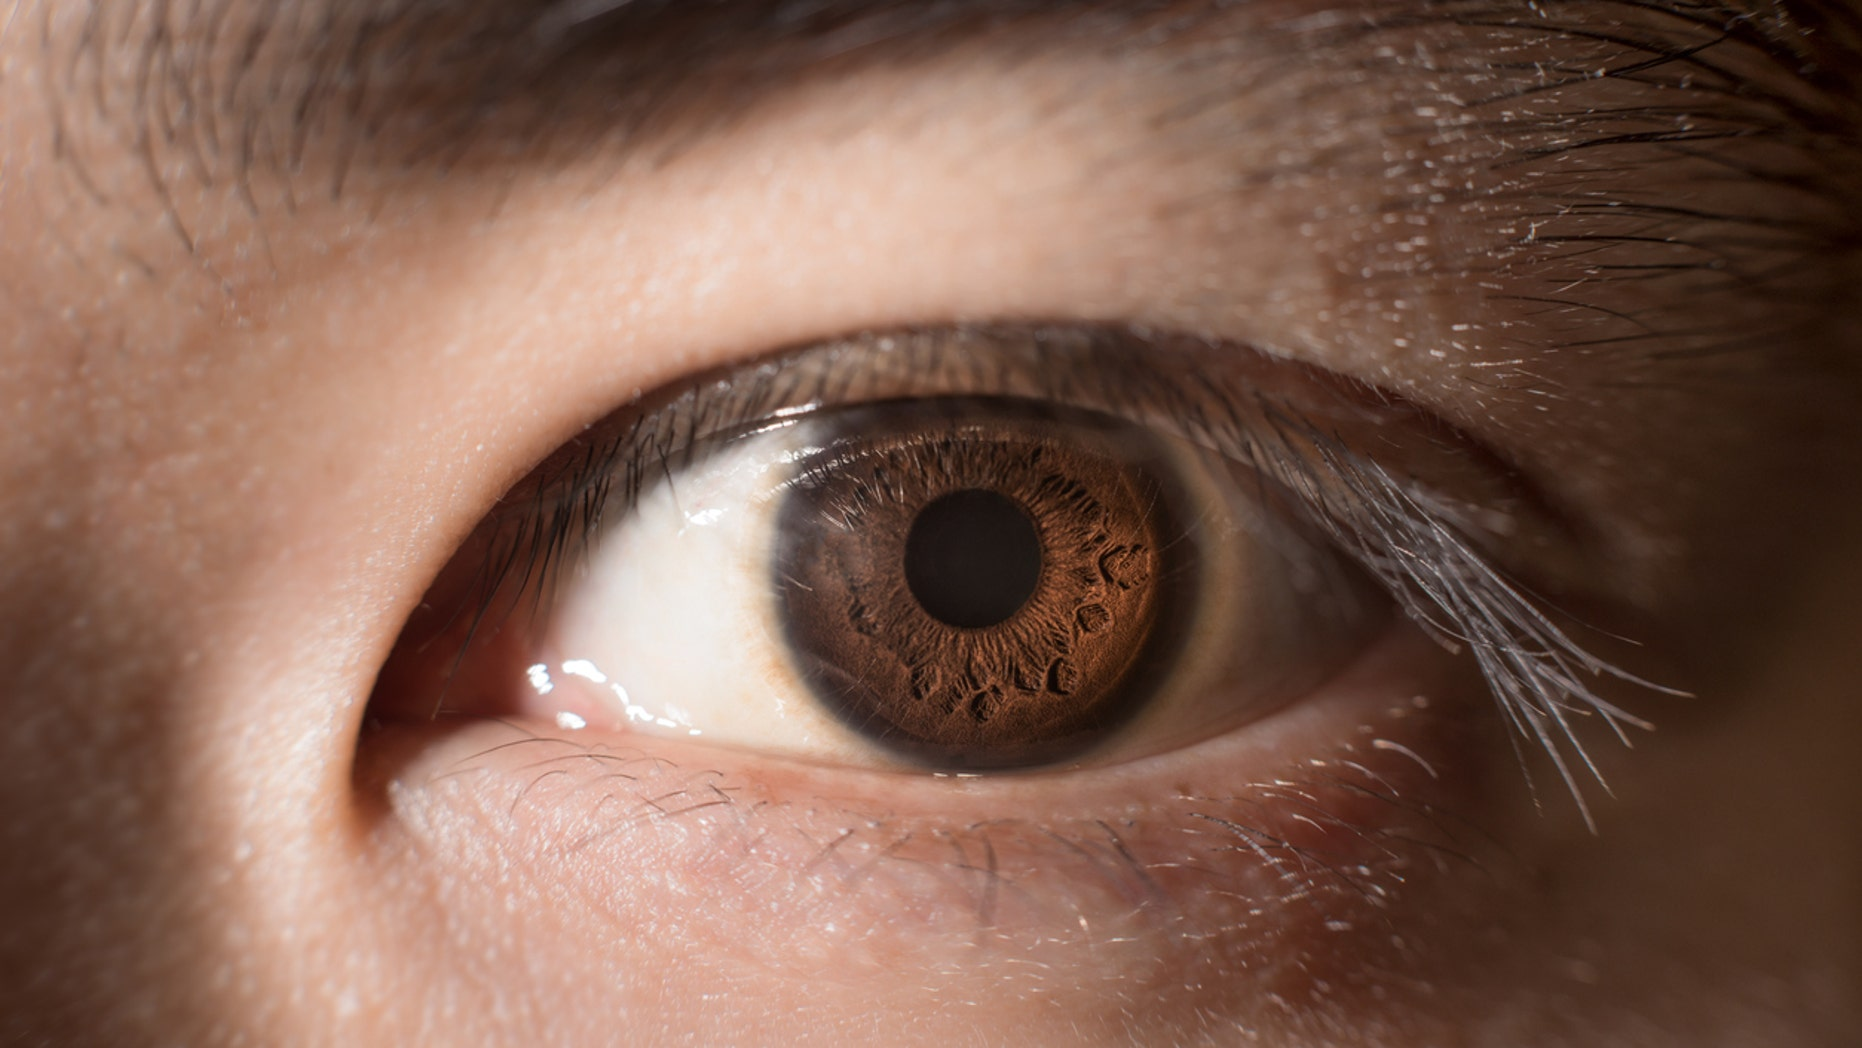 The man, who took more than the recommended 50 mg dose of the sildenafil citrate, which is commonly sold under the brand name Viagra, was diagnosed with persistent retinal toxicity, and found to have damaged his retina.